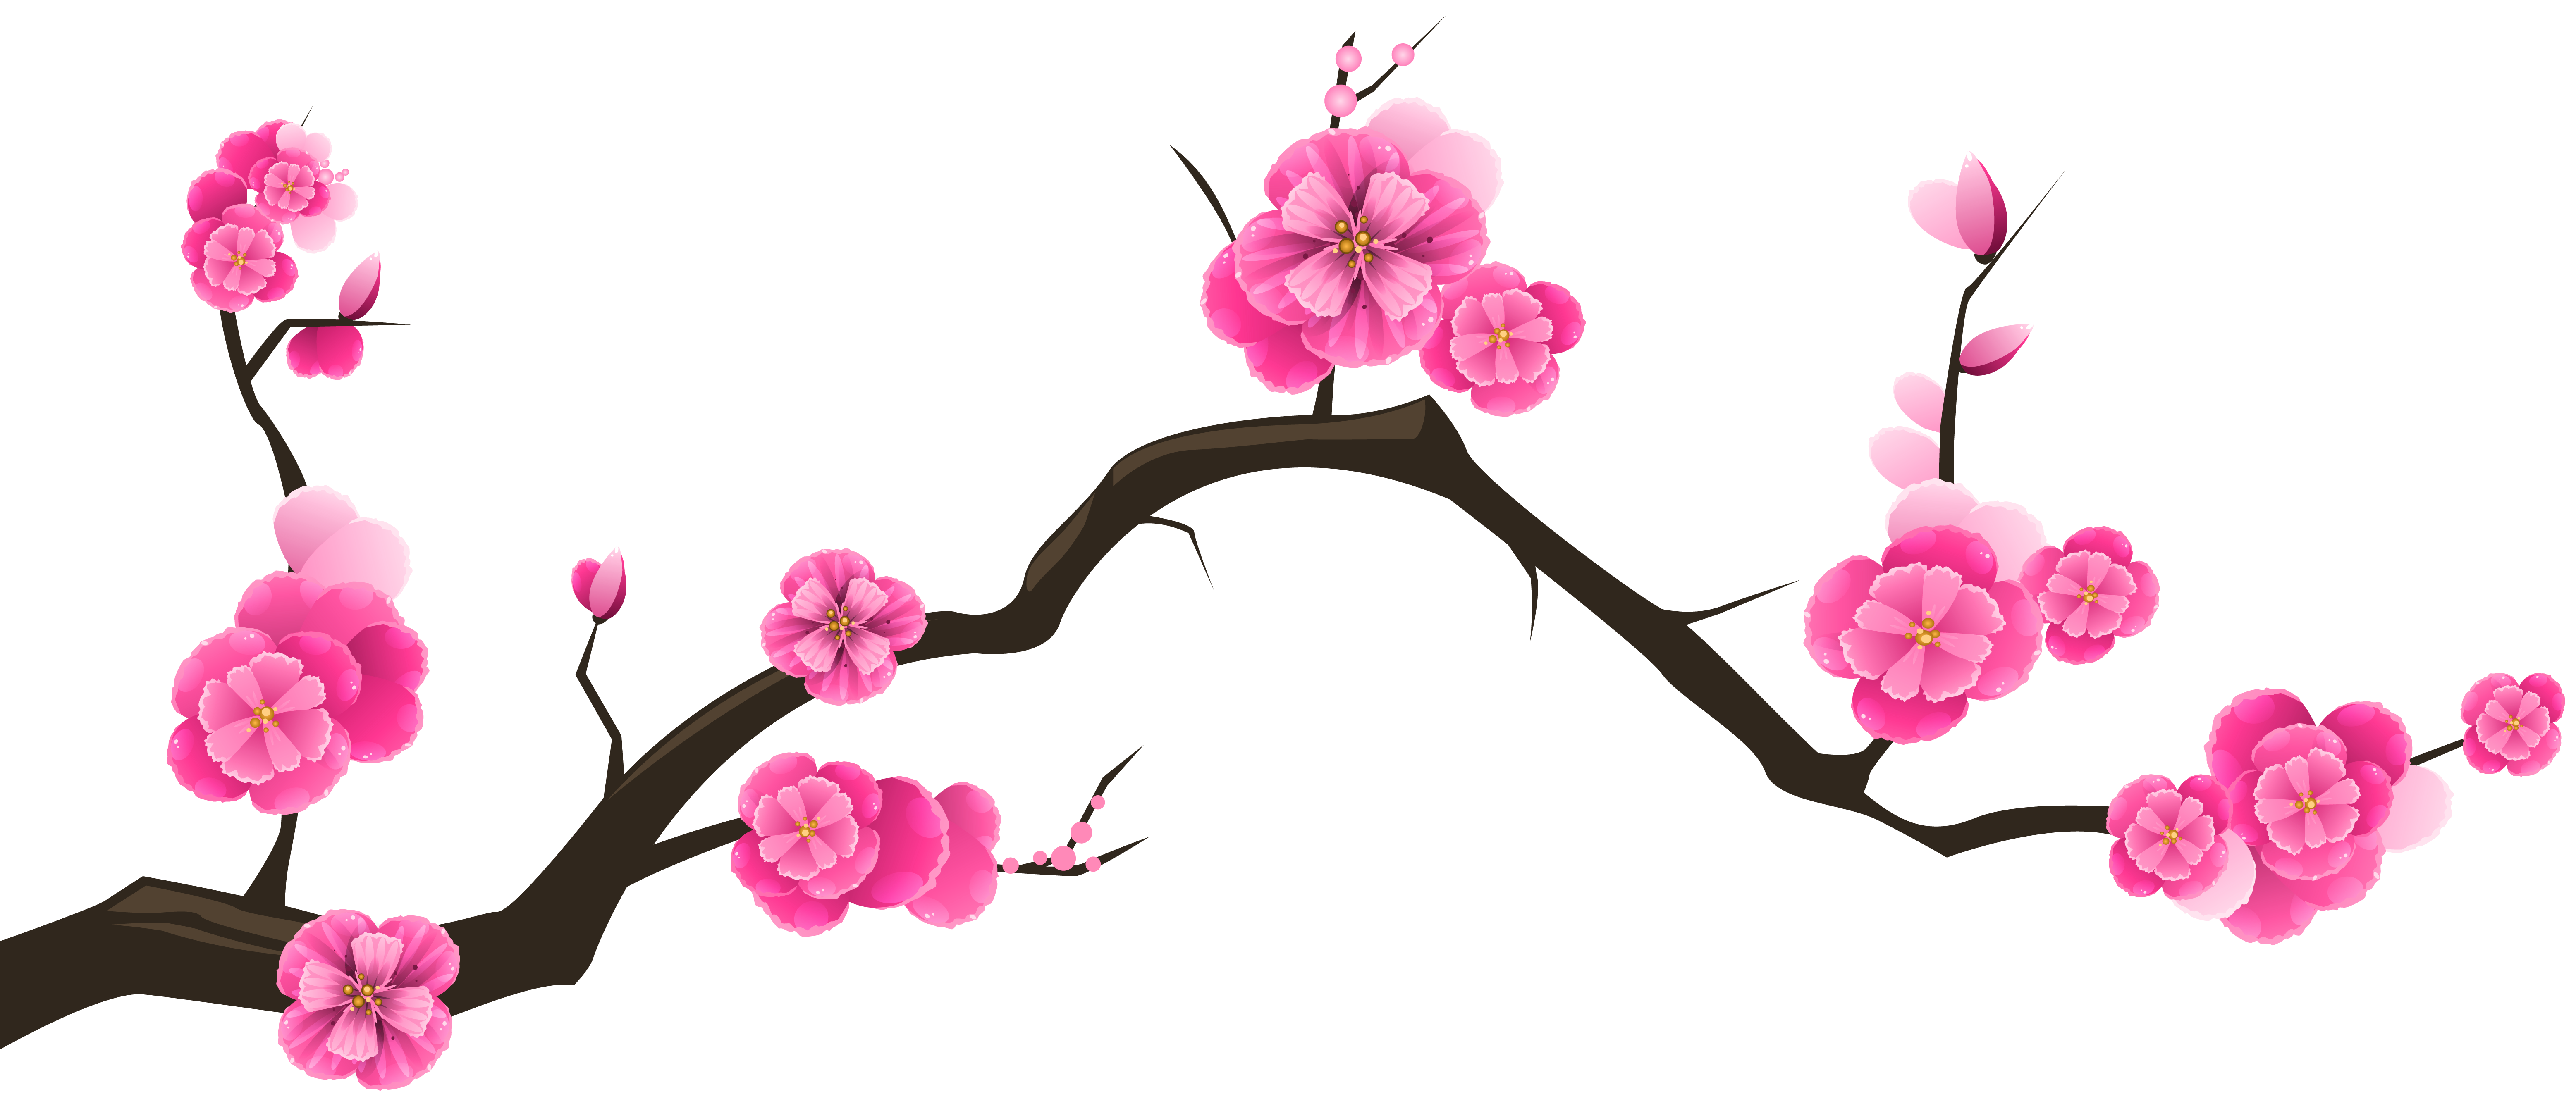 Rustic flower clipart picture black and white stock Cherry Blossom Clipart at GetDrawings.com | Free for personal use ... picture black and white stock